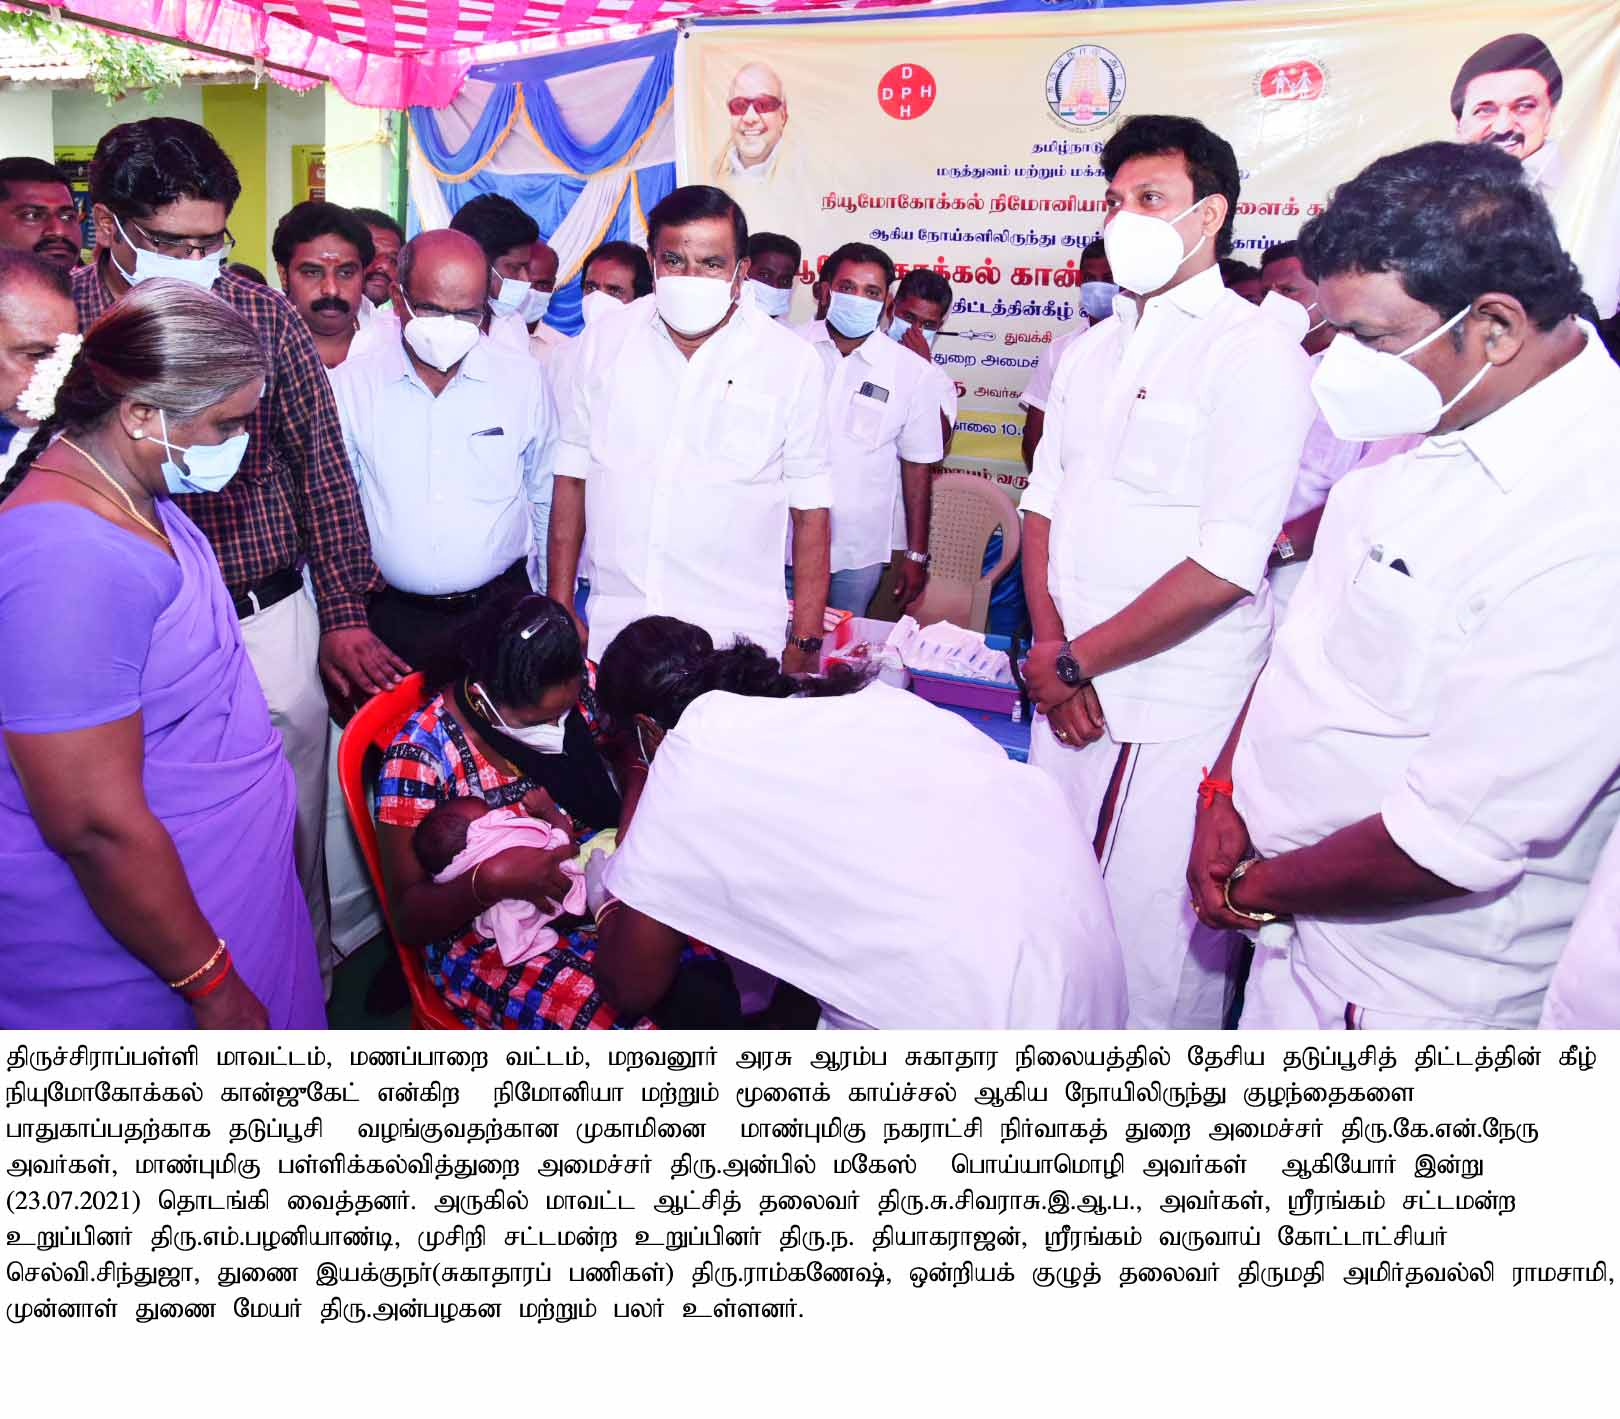 SHon'ble Municipal Administration Minister and Hon'ble School Educational Minister started Vaccination camp for Children on 23-7-21